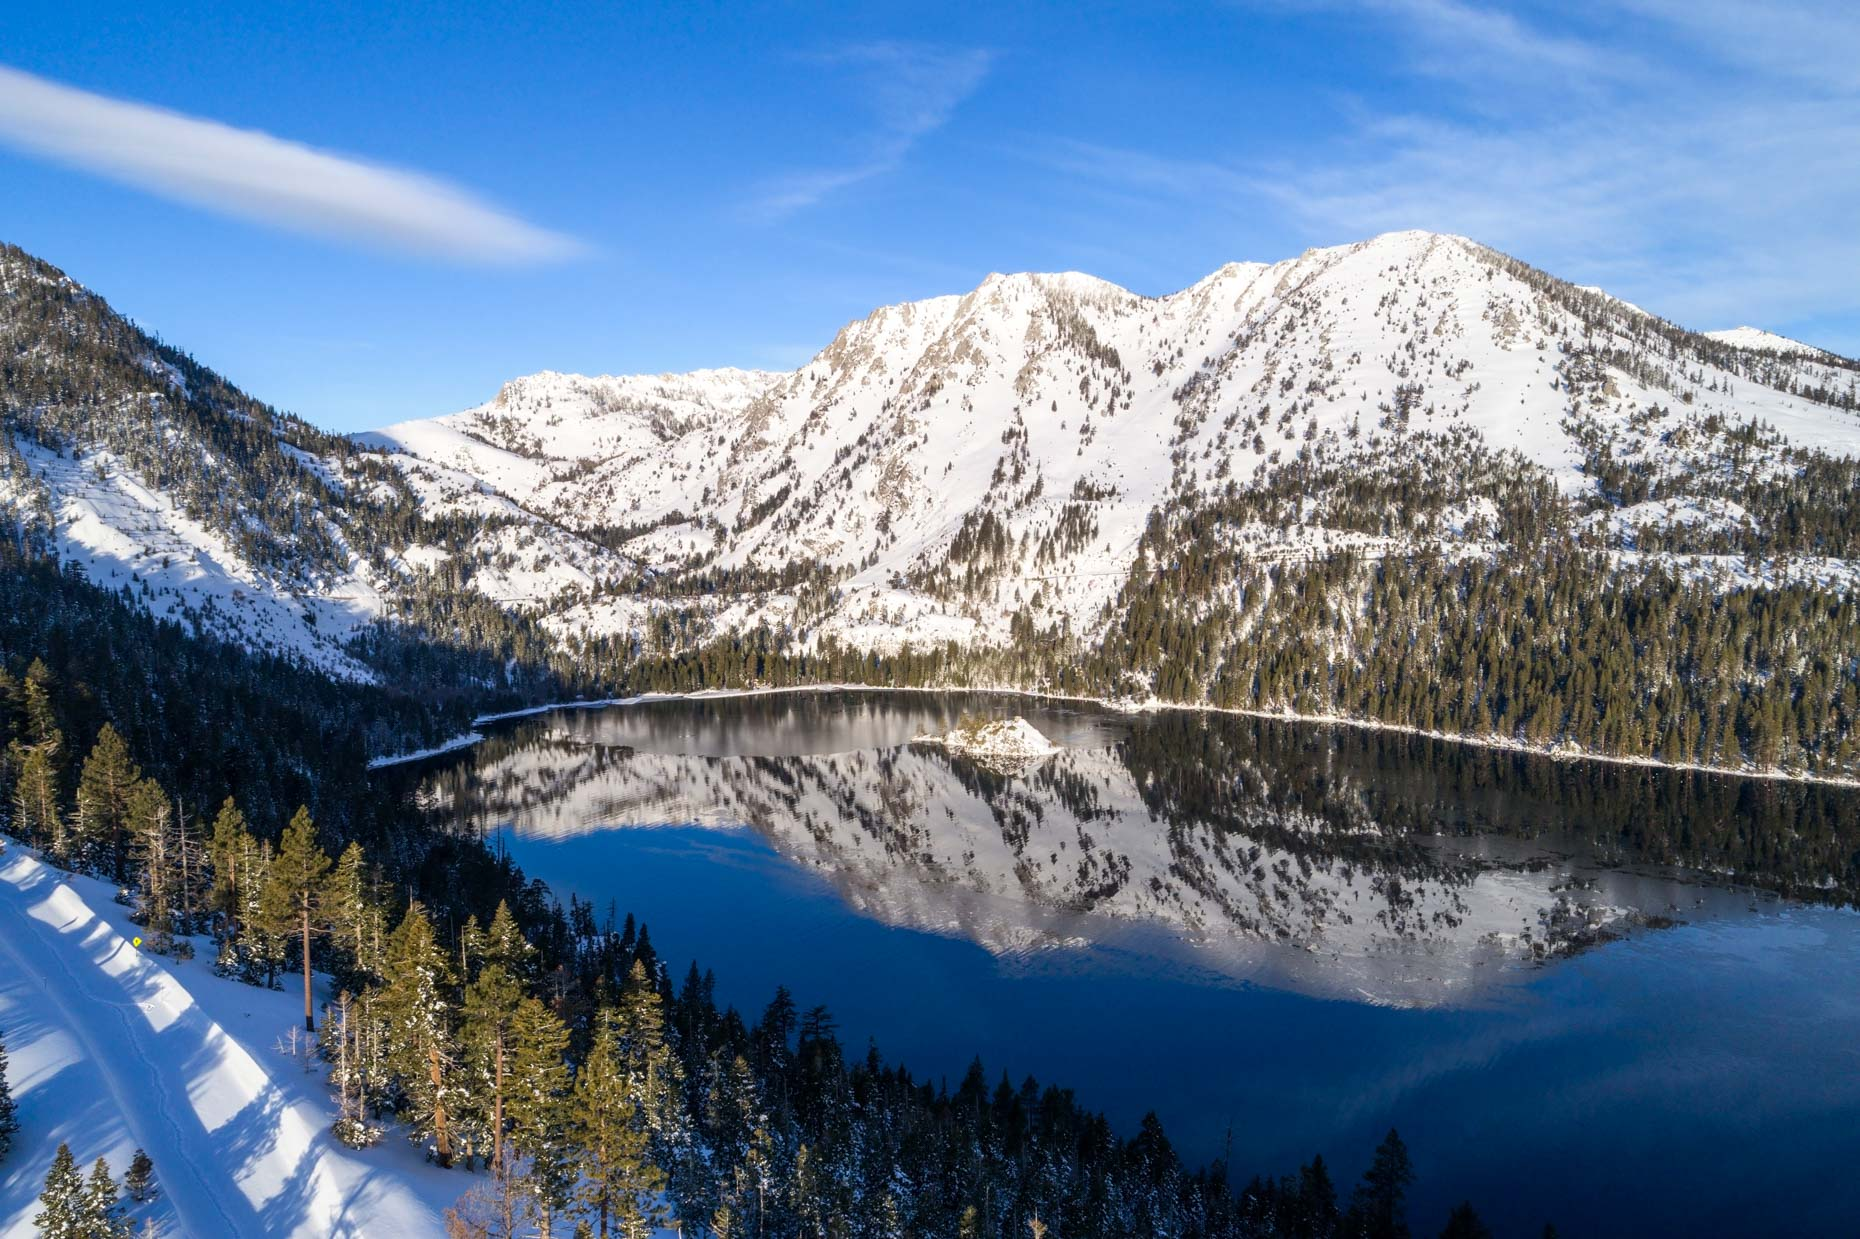 Drone - Winter Emerald Bay, Lake Tahoe, California